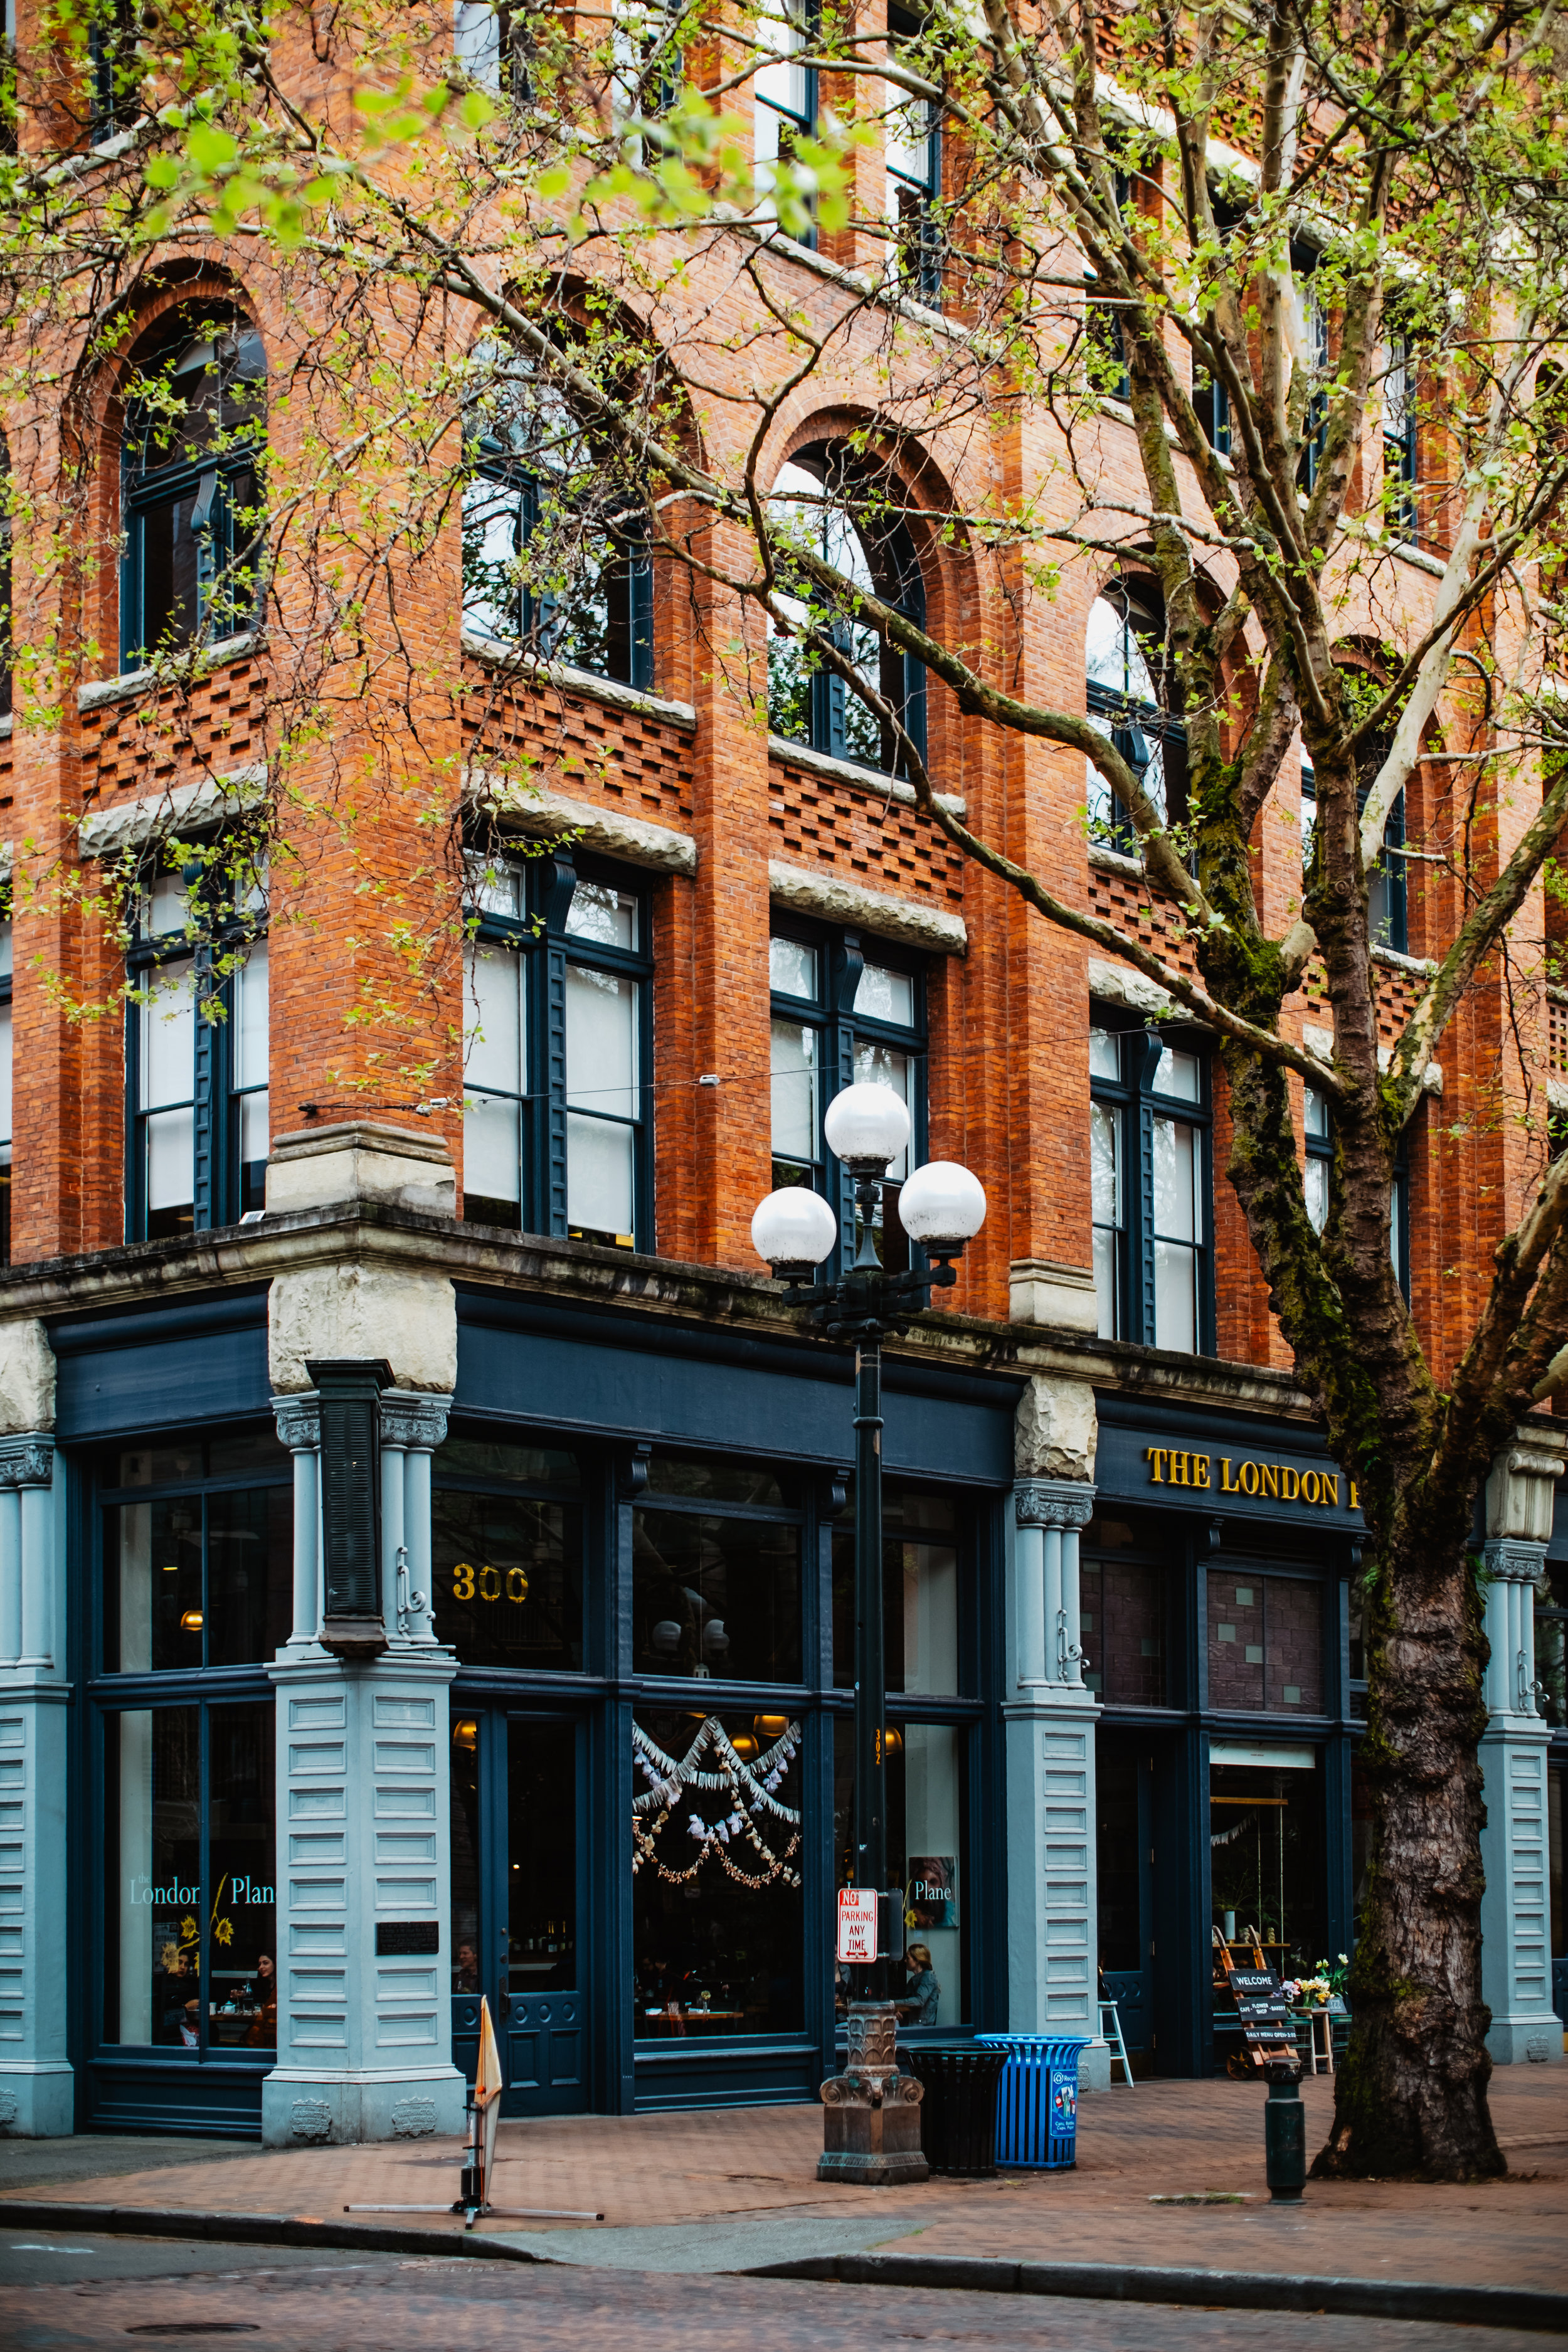 The London Plane- Pioneer Square Seattle Element Creative Lifestyle Photography2019-05-23 at 5.32.17 PM 3.jpg